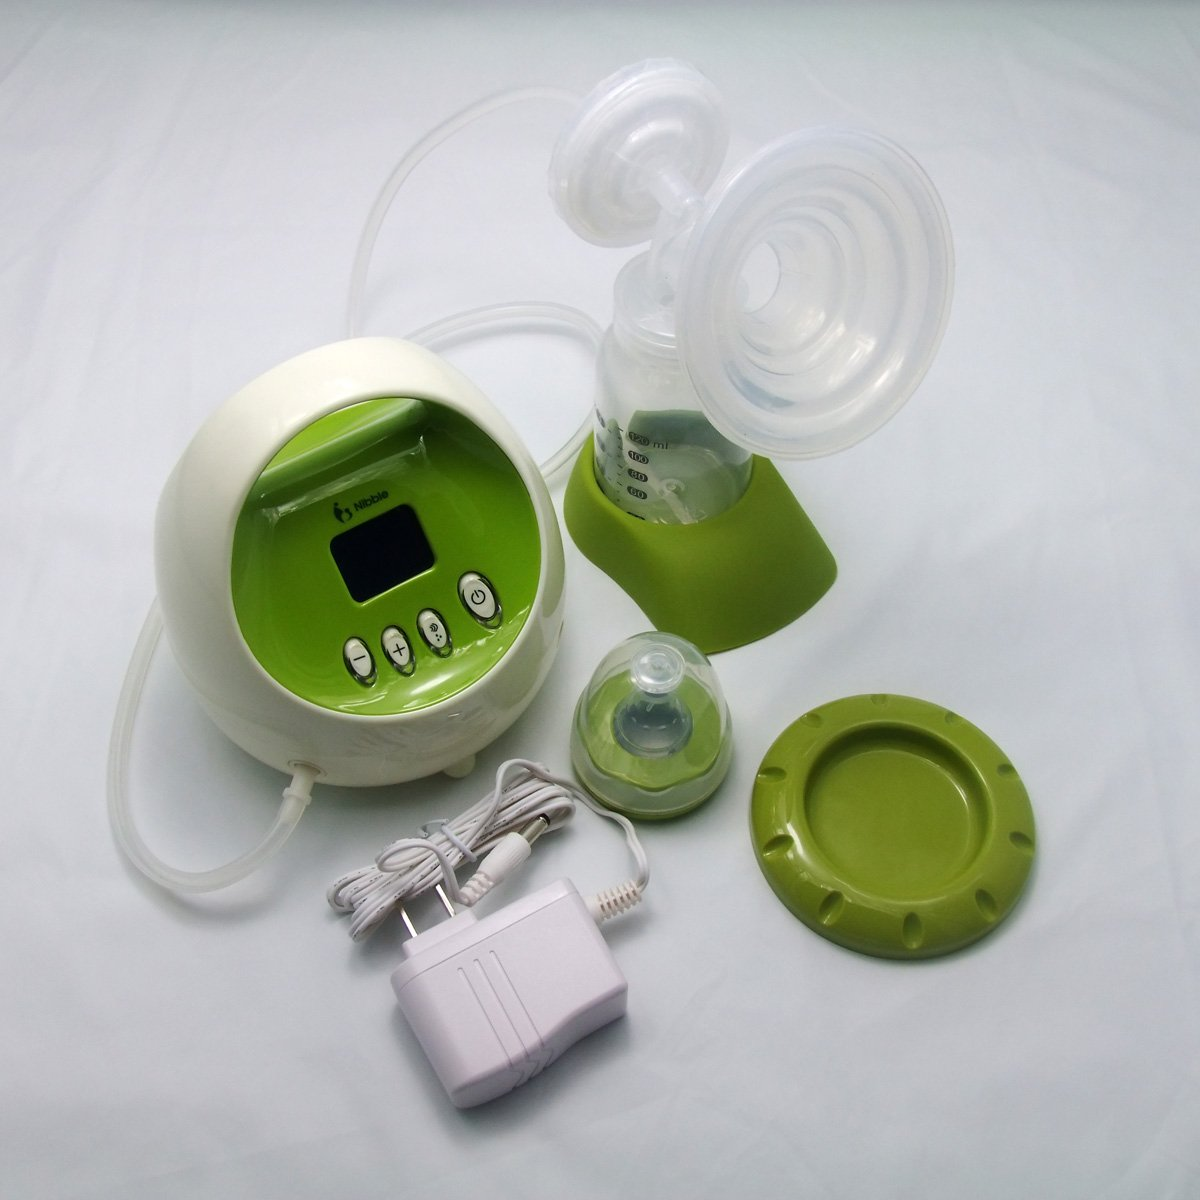 Gland Nibble Single Electric Breast Pump Breastfeeding Pump for Nursing Moms BPA Free, Green, with LCD Display and Compact Design